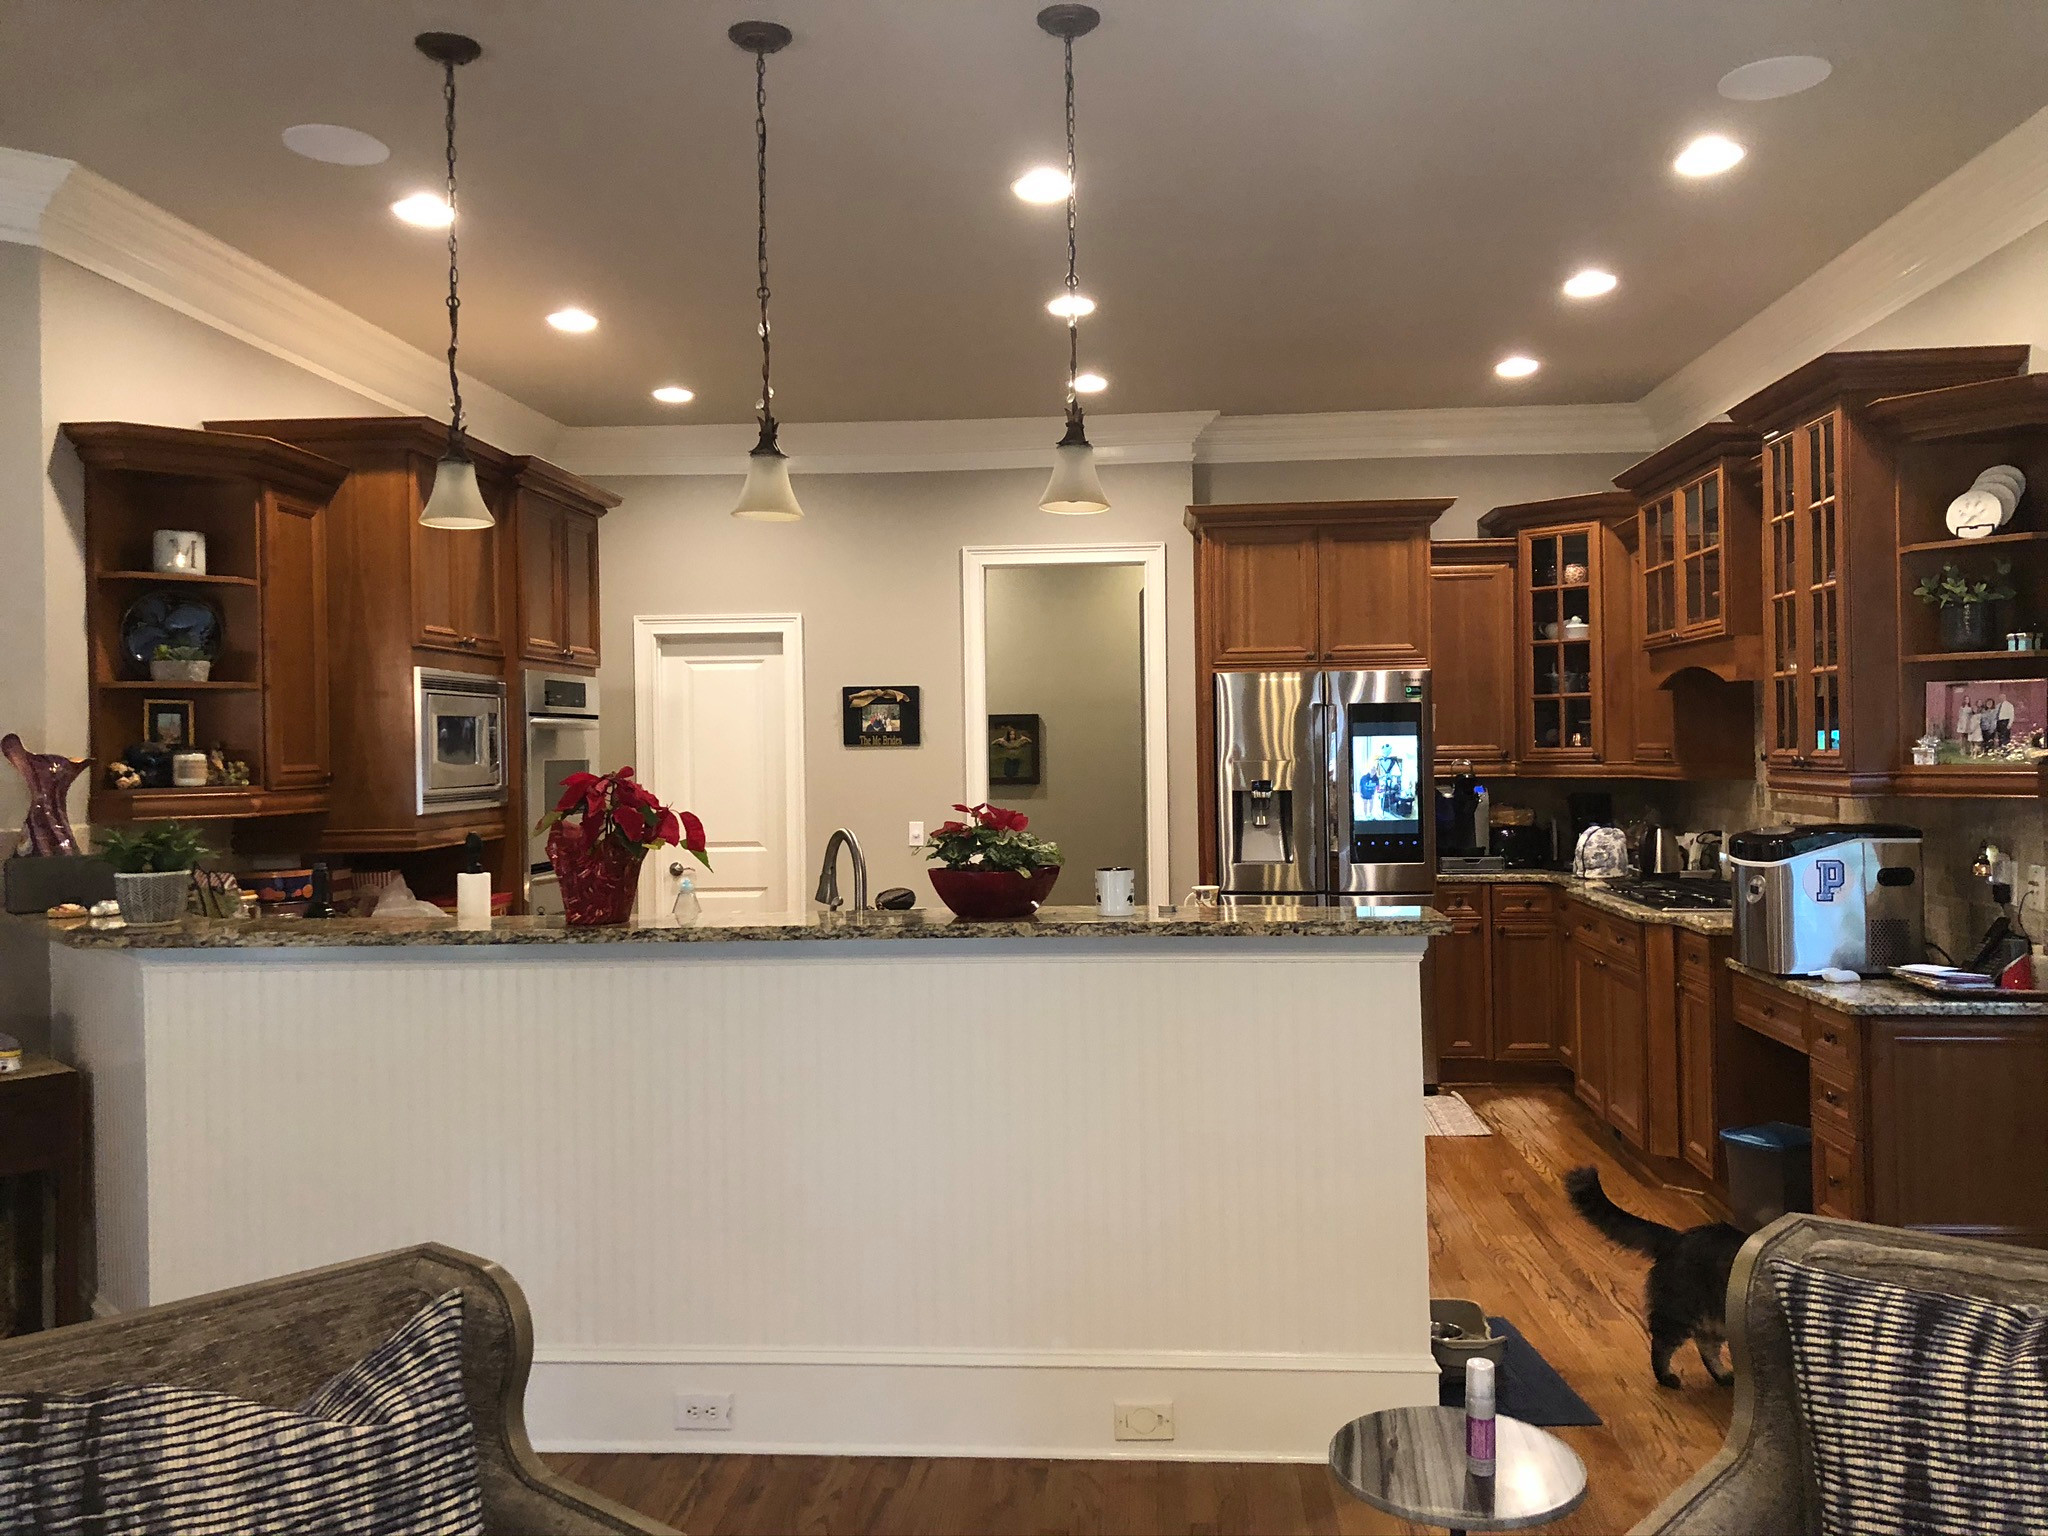 East Cobb Clean and sophisticated Kitchen